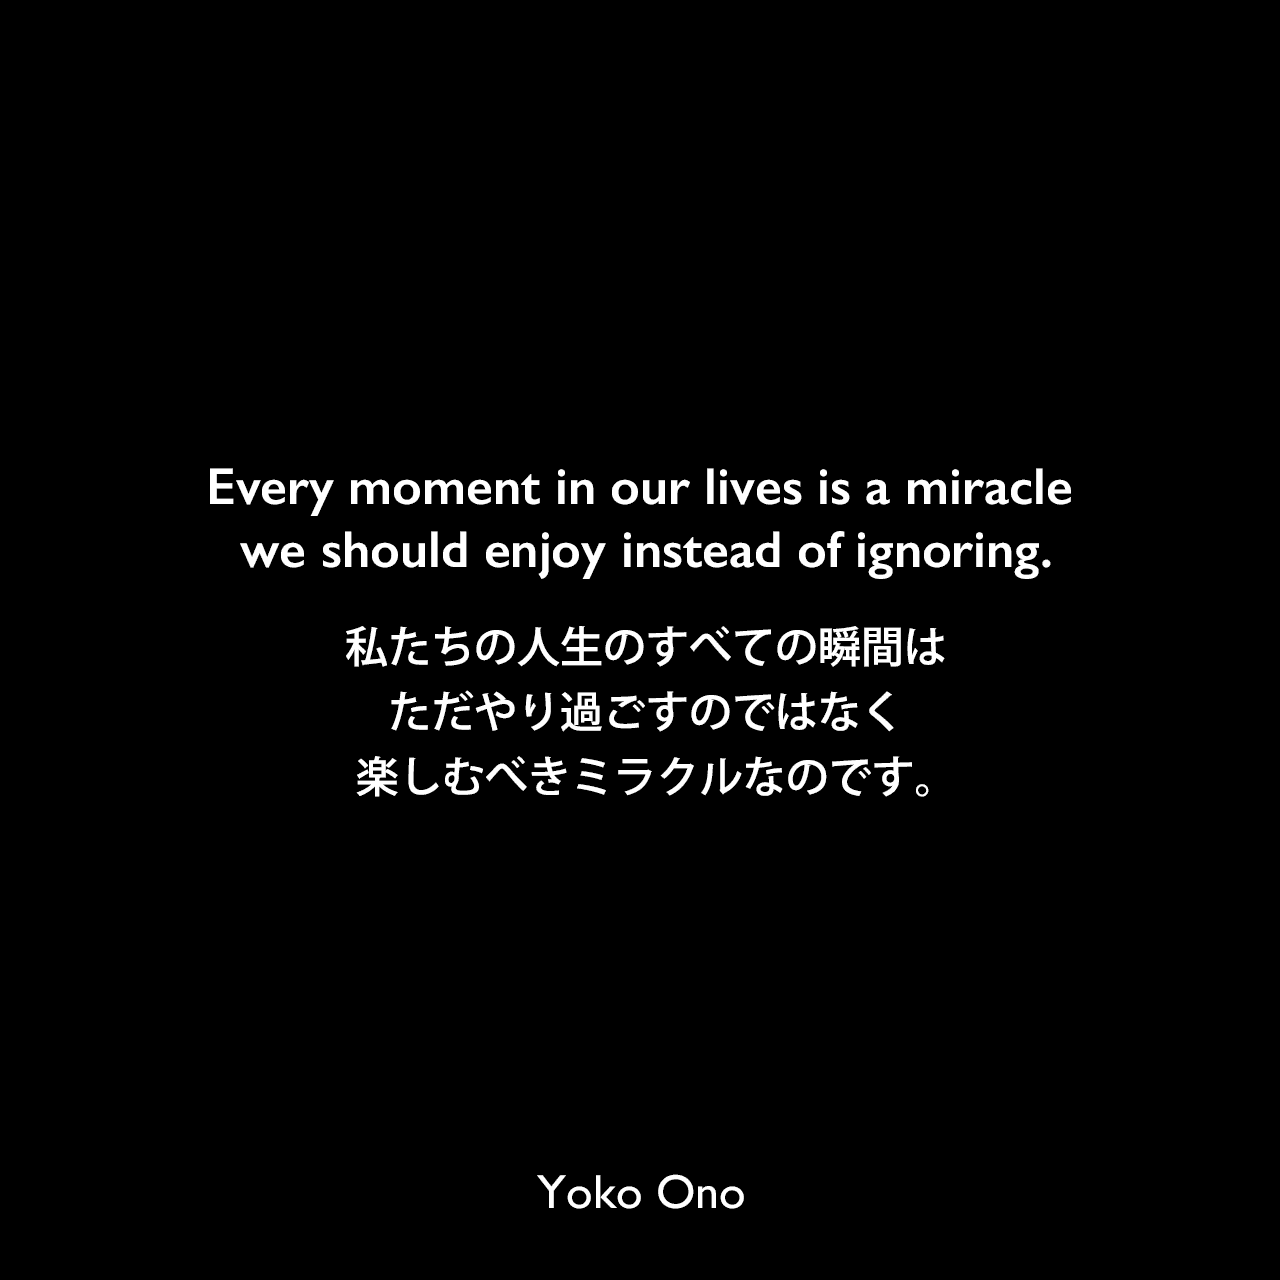 Every moment in our lives is a miracle we should enjoy instead of ignoring.私たちの人生のすべての瞬間は、ただやり過ごすのではなく楽しむべきミラクルなのです。